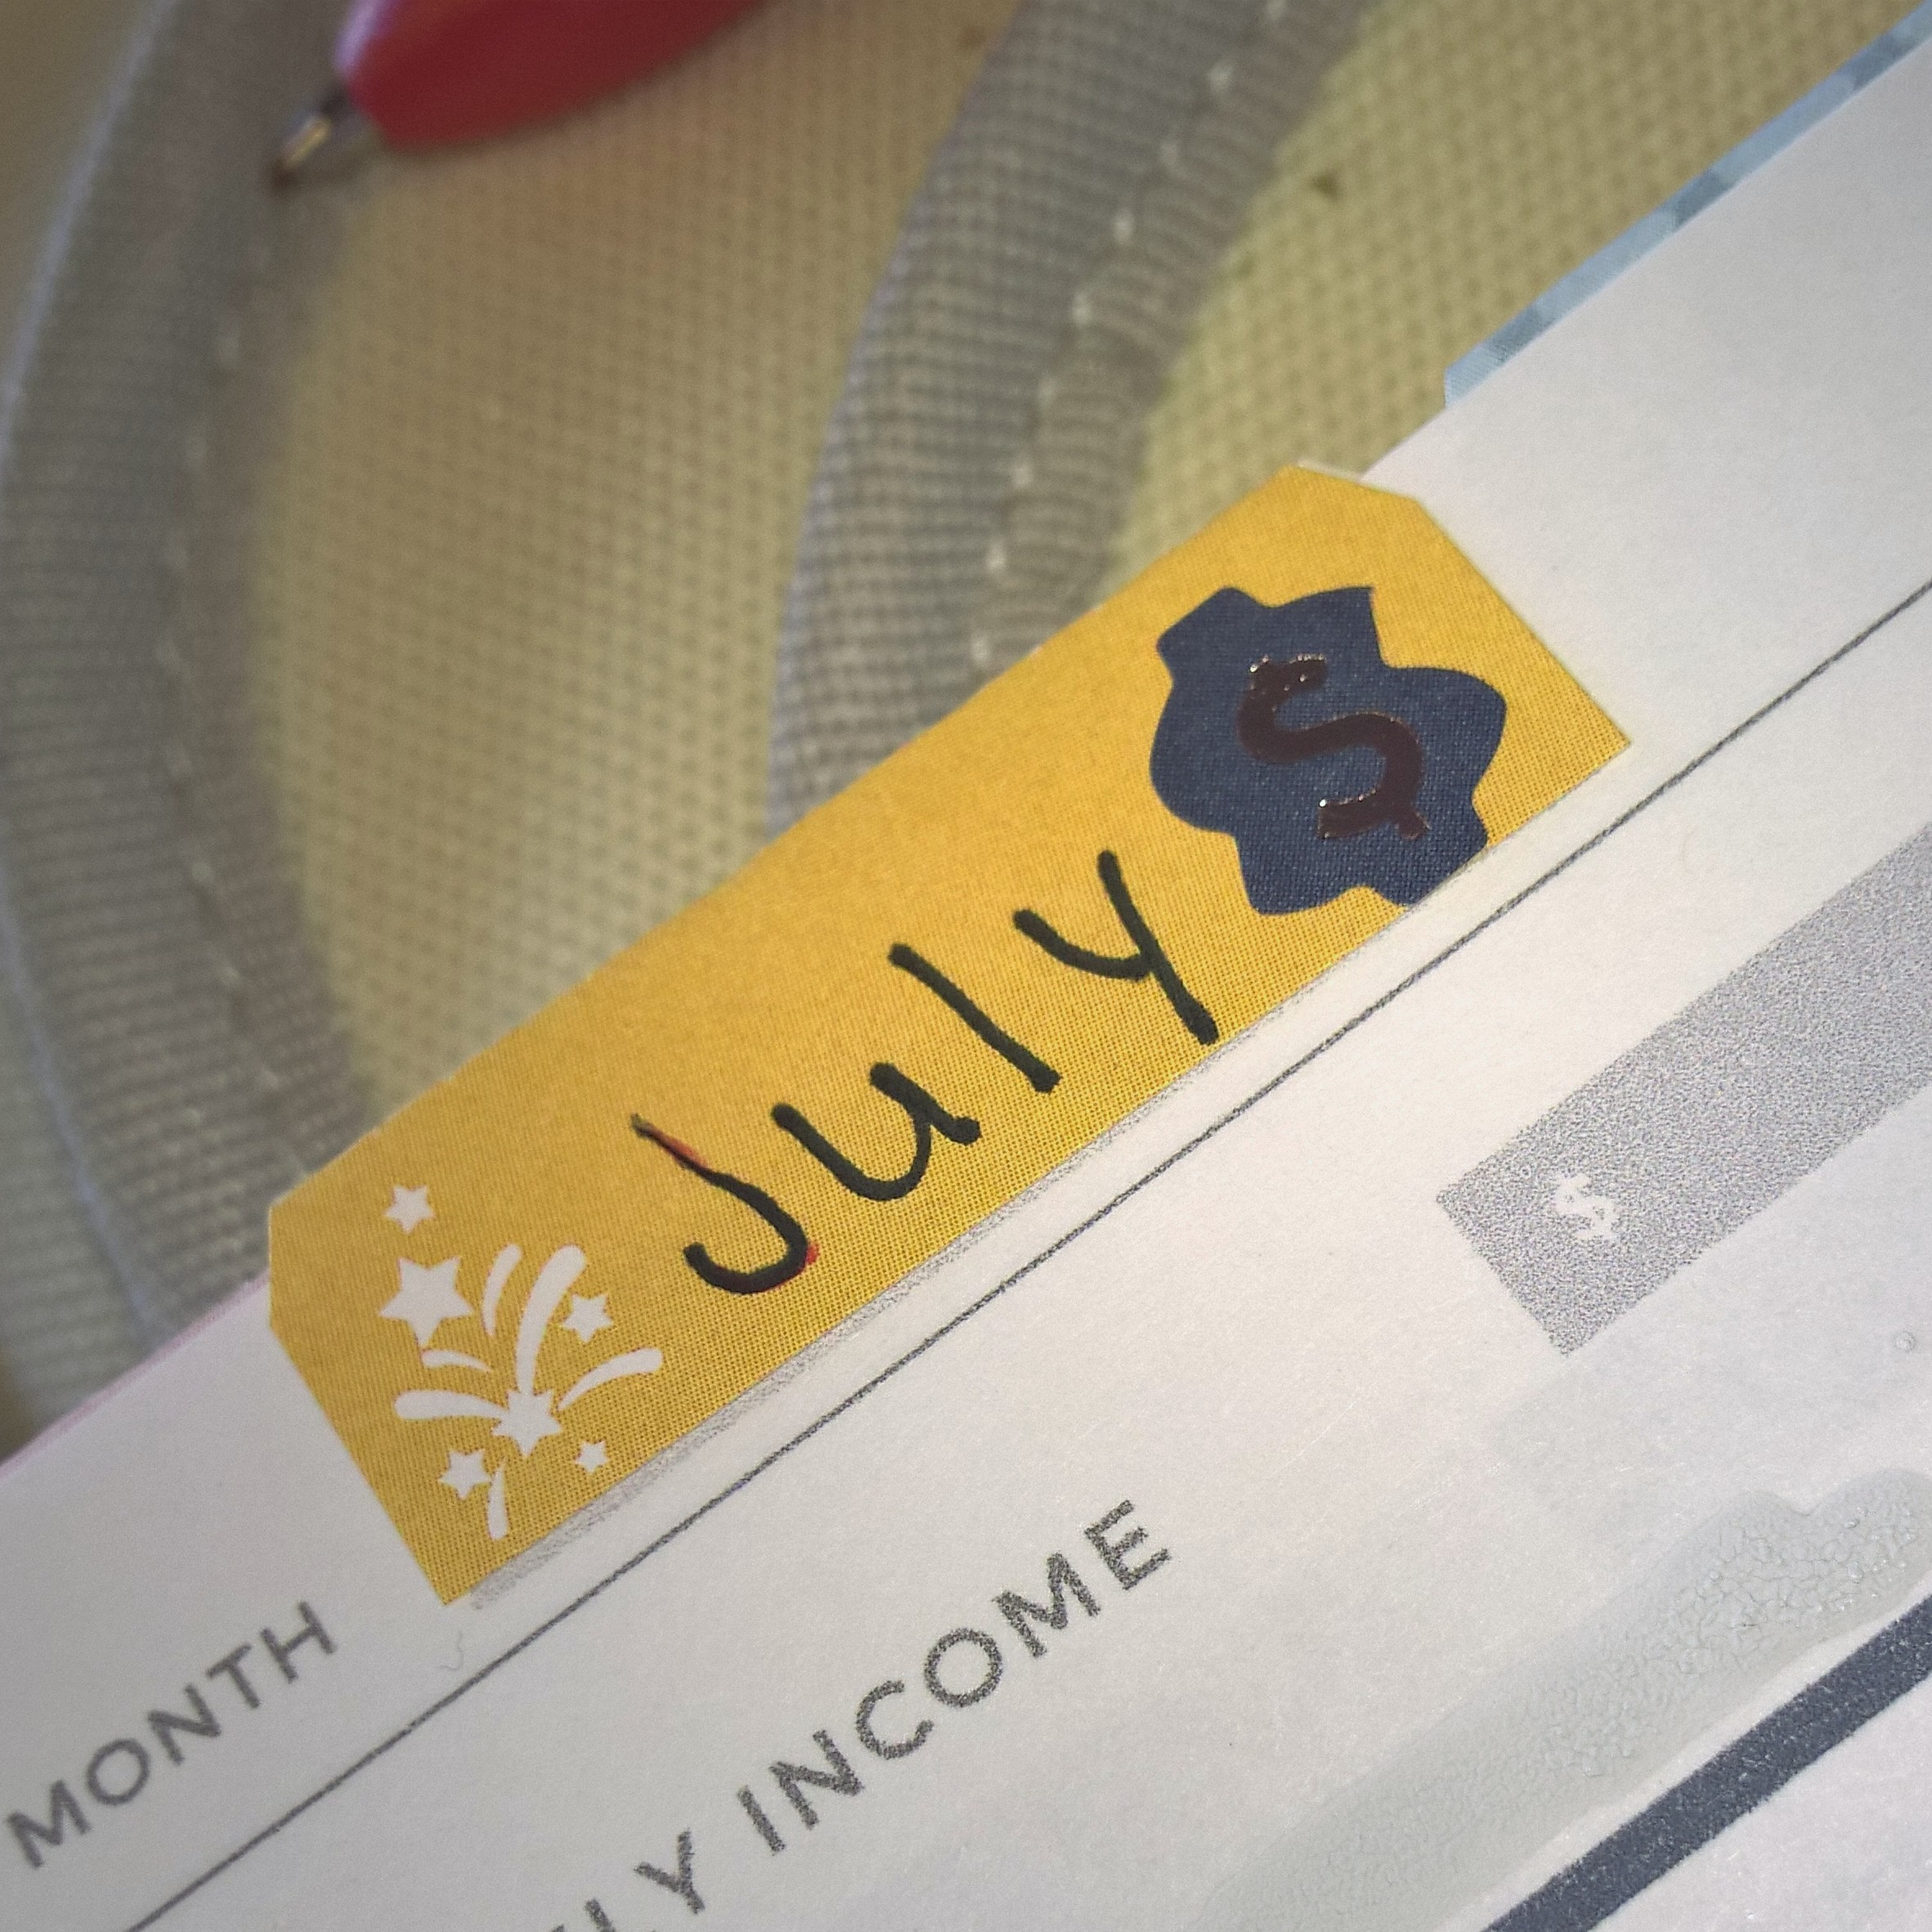 Budget Page (dispersed) section of July in my Plum Paper 7x9 Vertical Lines Family Management Planner | July Plum Paper Walkthrough